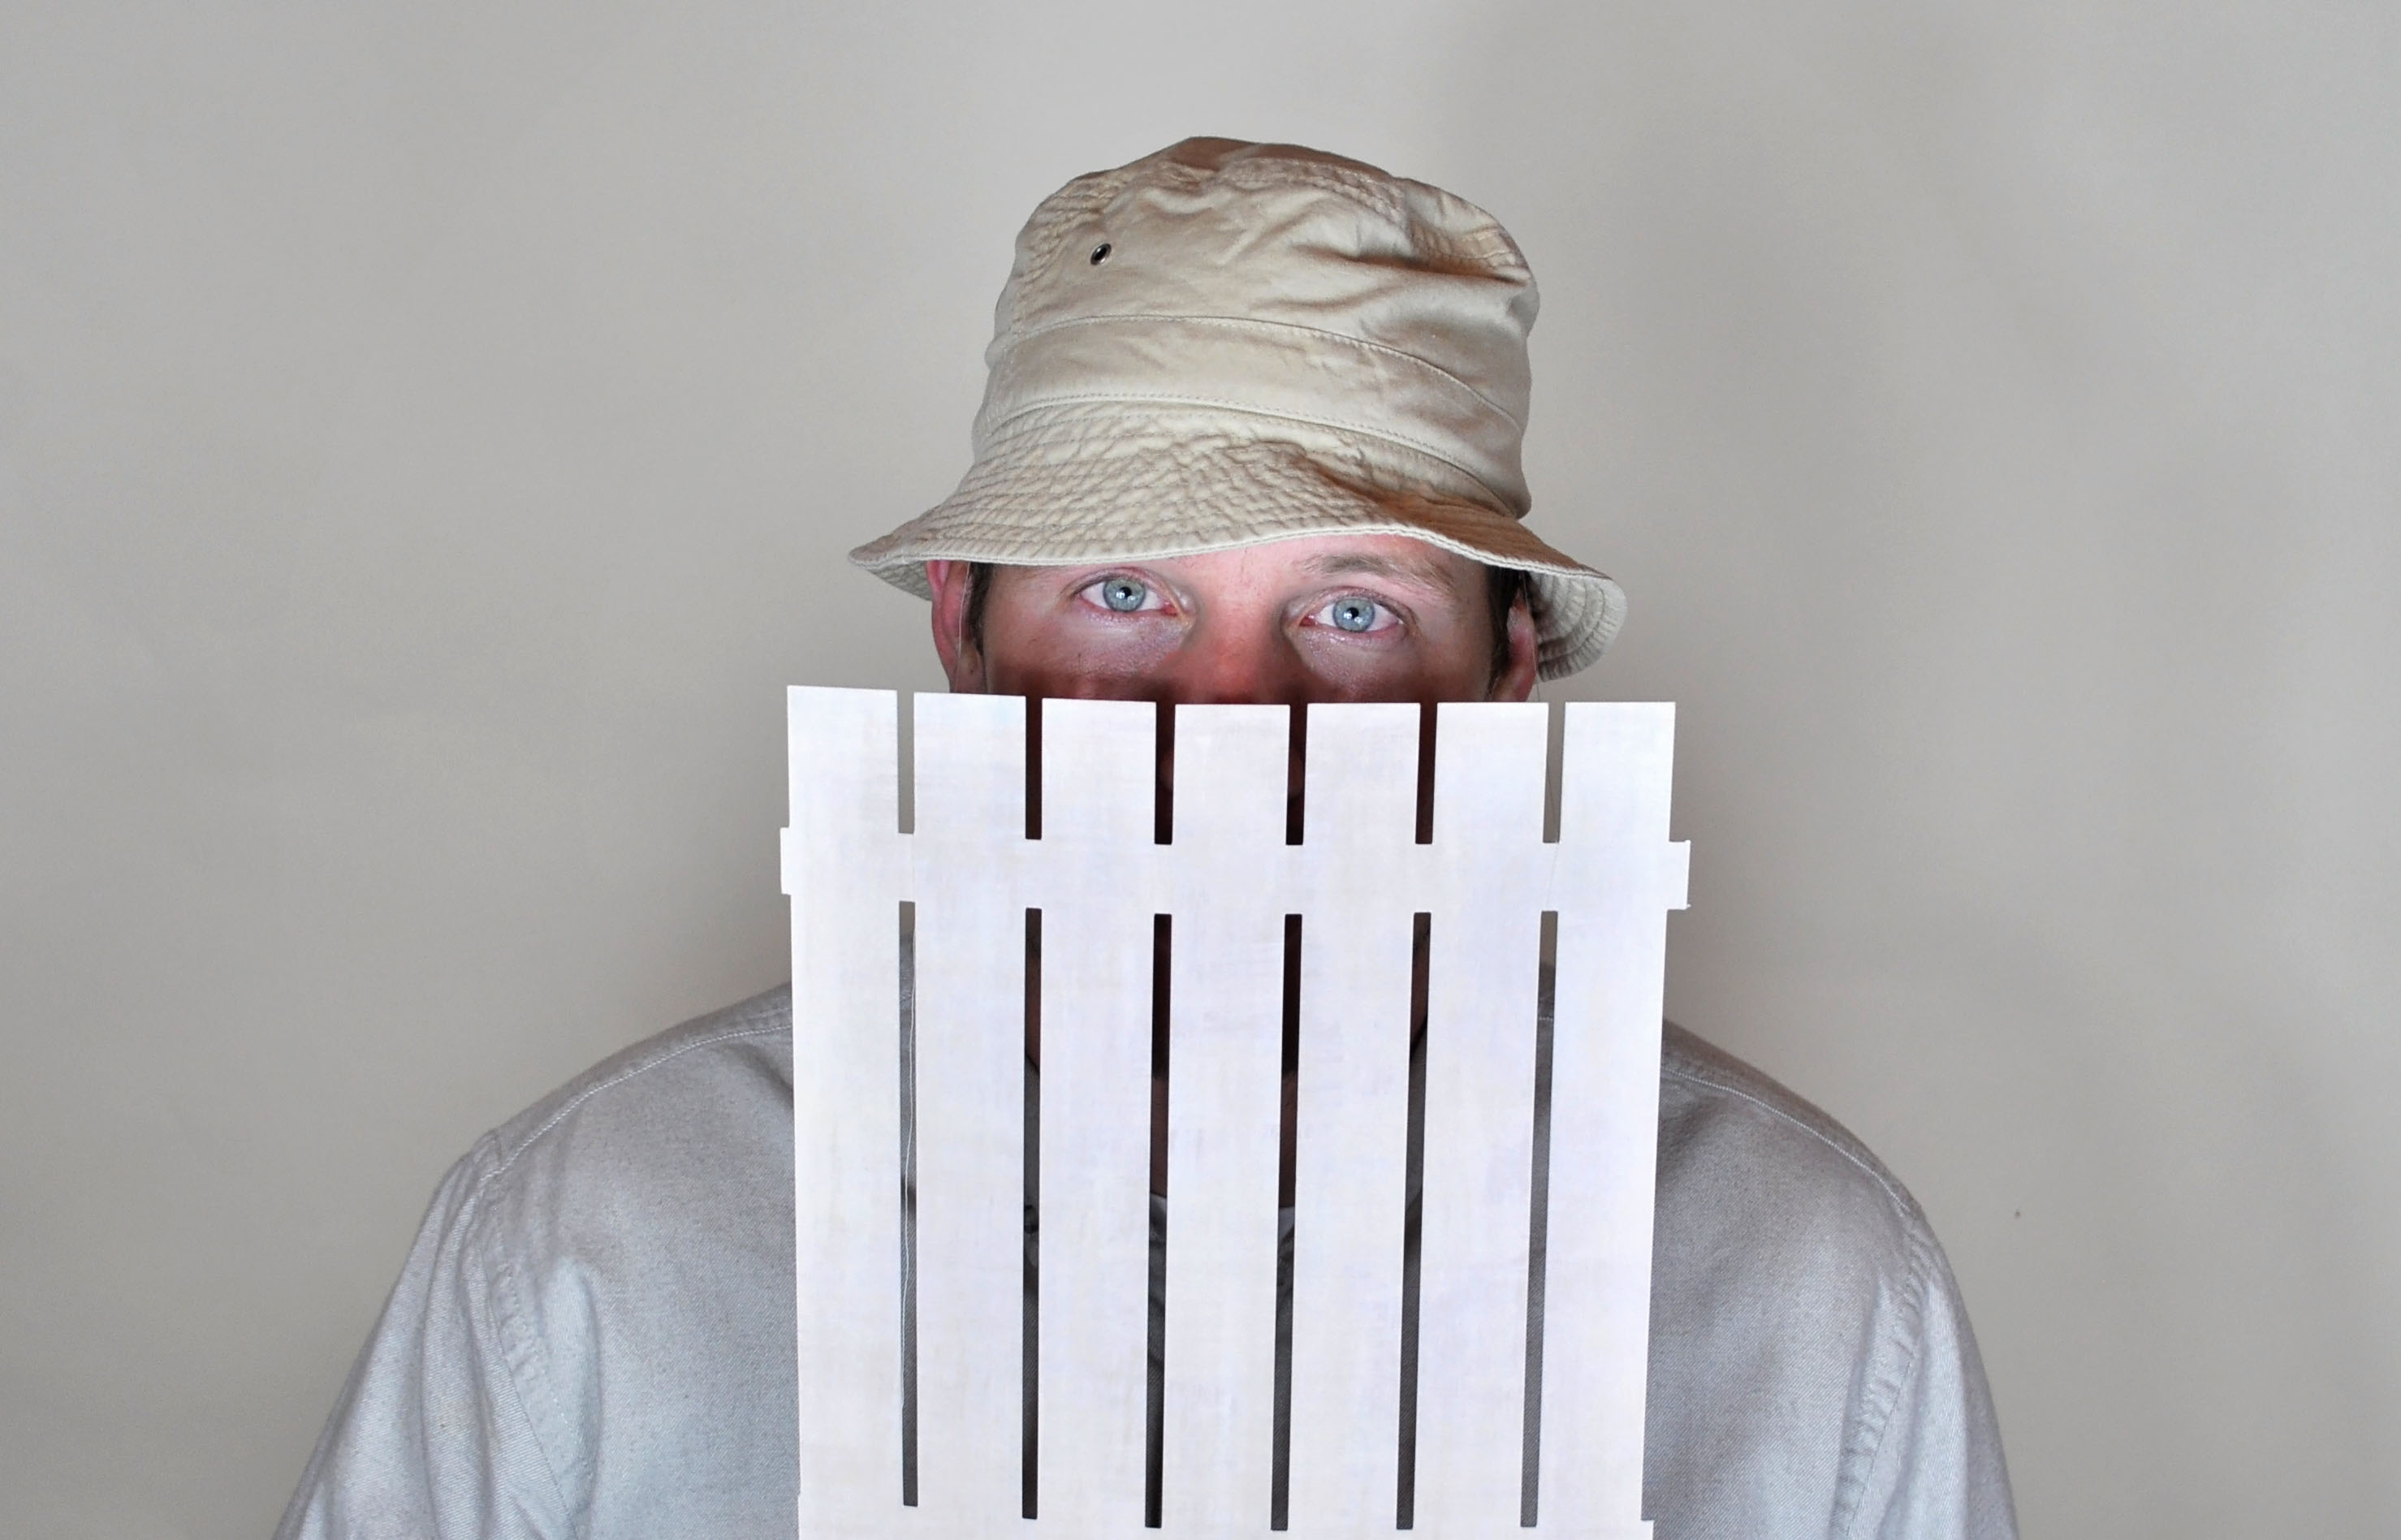 Ridiculously easy last minute halloween costume--Wilson from home improvement. Make a paper fence, attach to hat with string. Done! Heidi-ho neighbor-o.